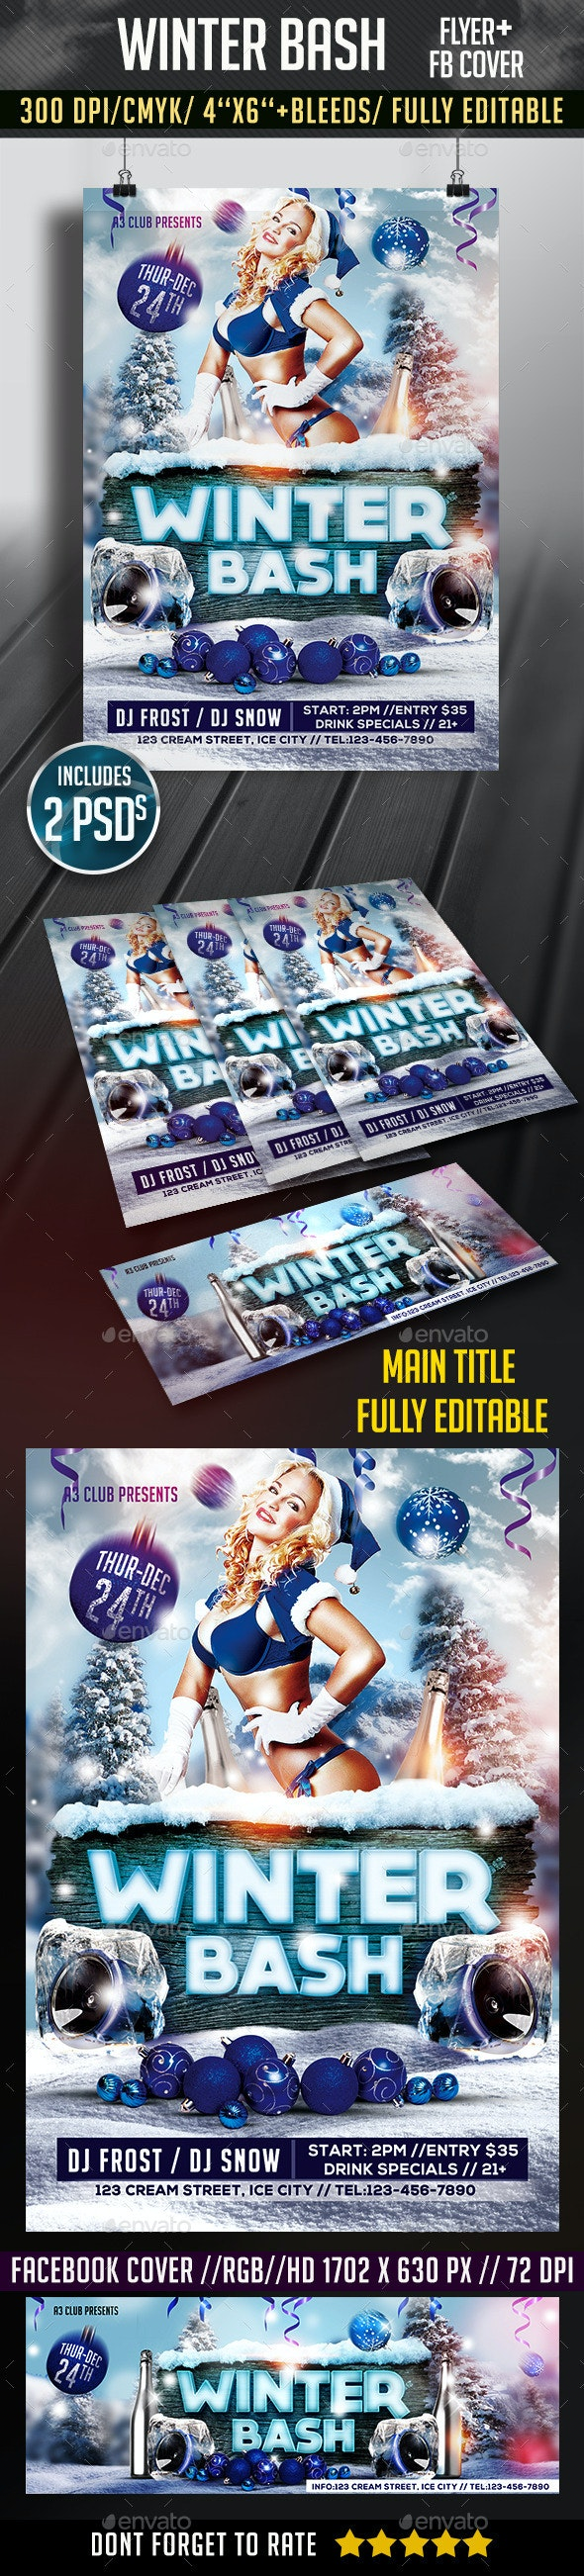 Winter Bash Flyer + FB Cover - Clubs & Parties Events